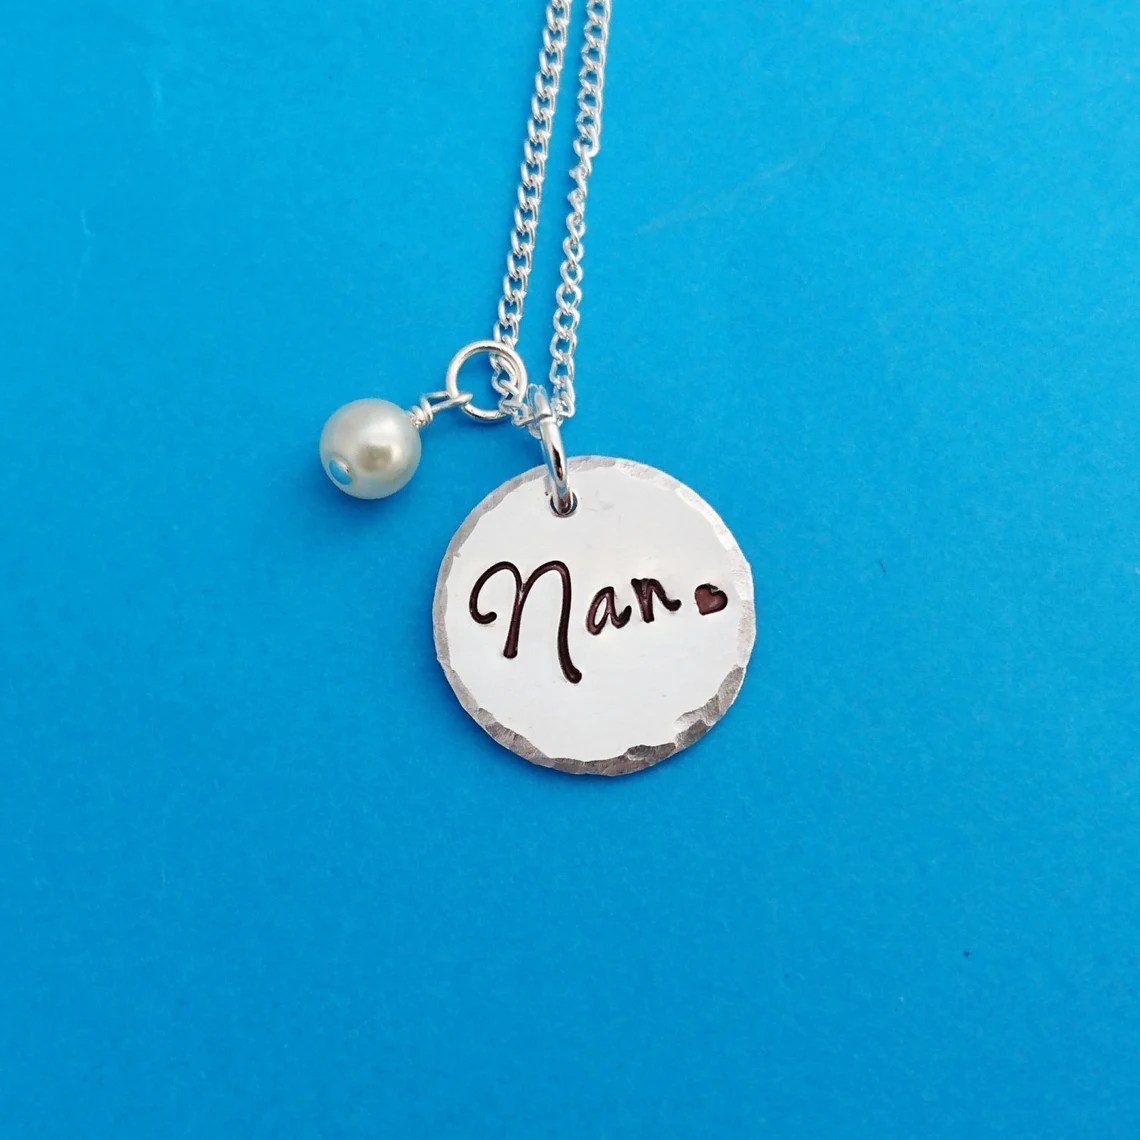 Nan necklace